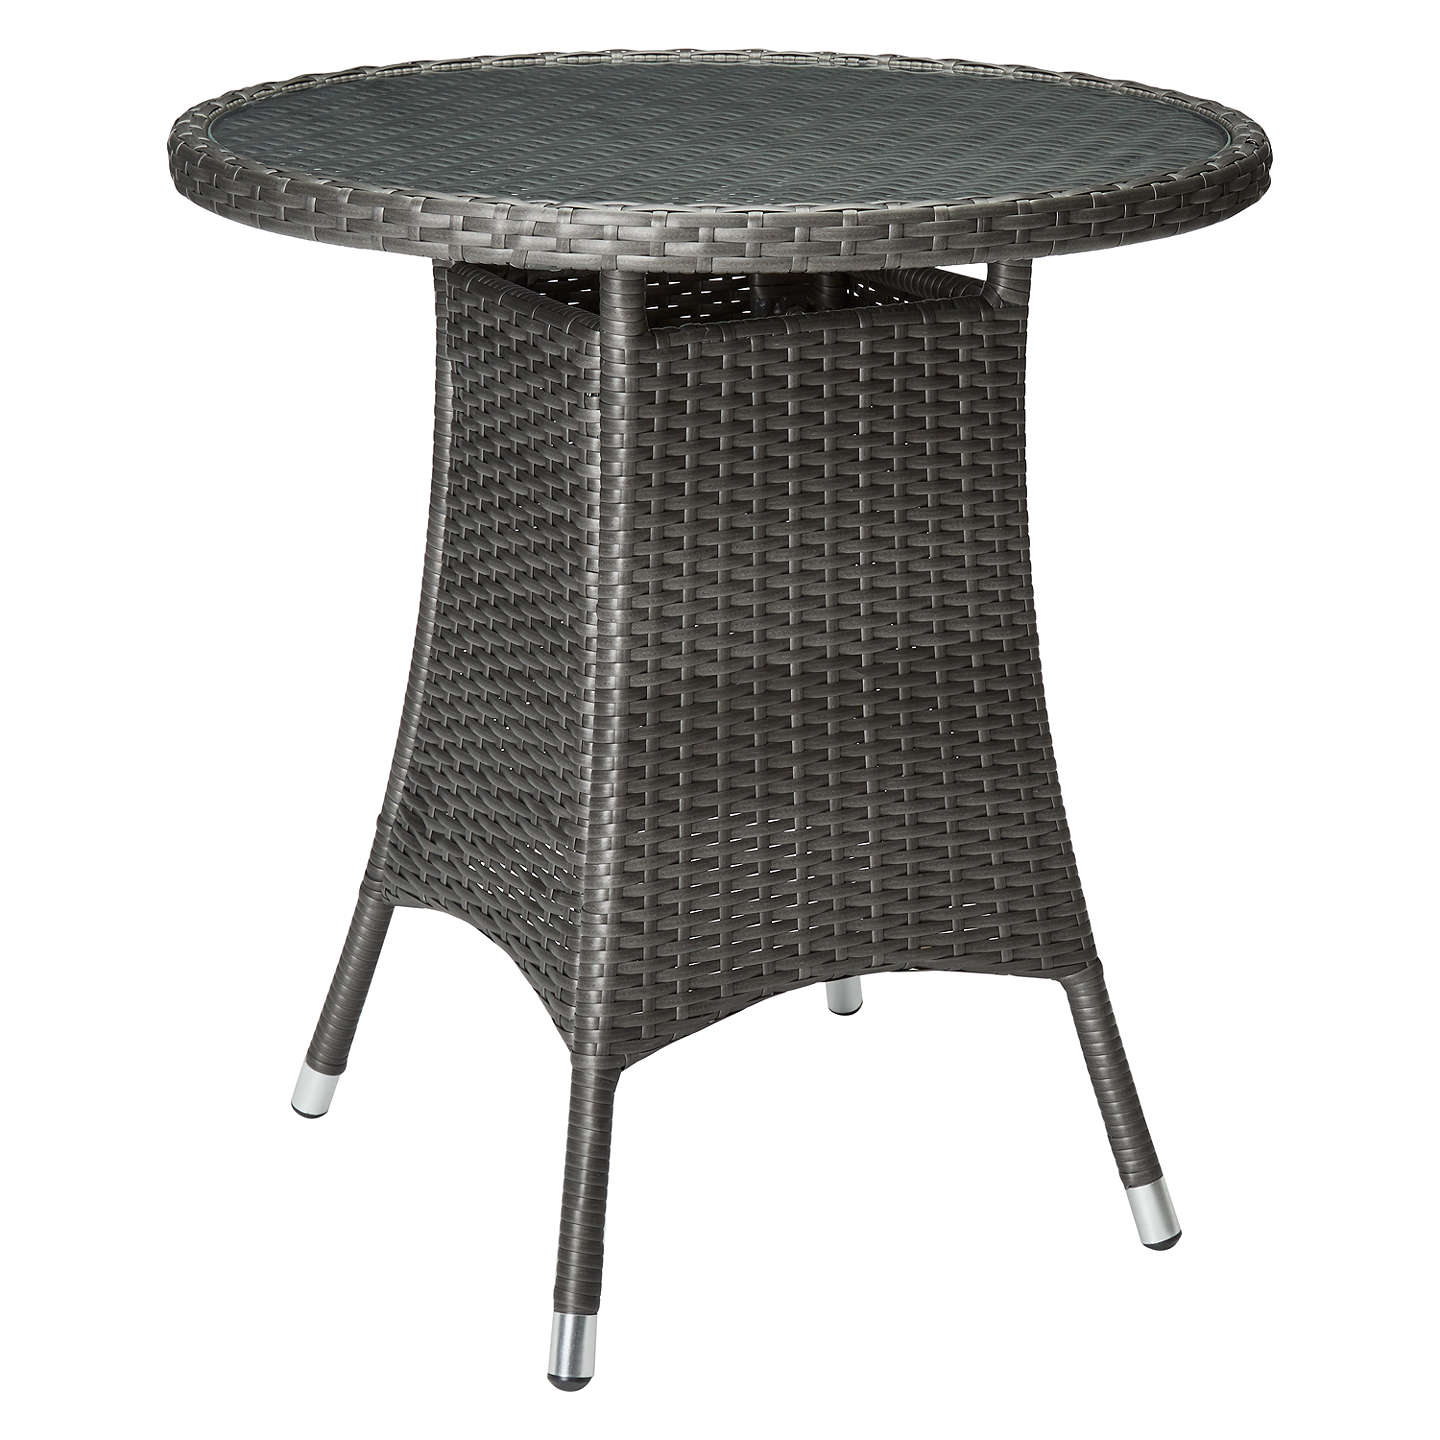 warranty dl the bistro table care description concrete hauteville specs sl product